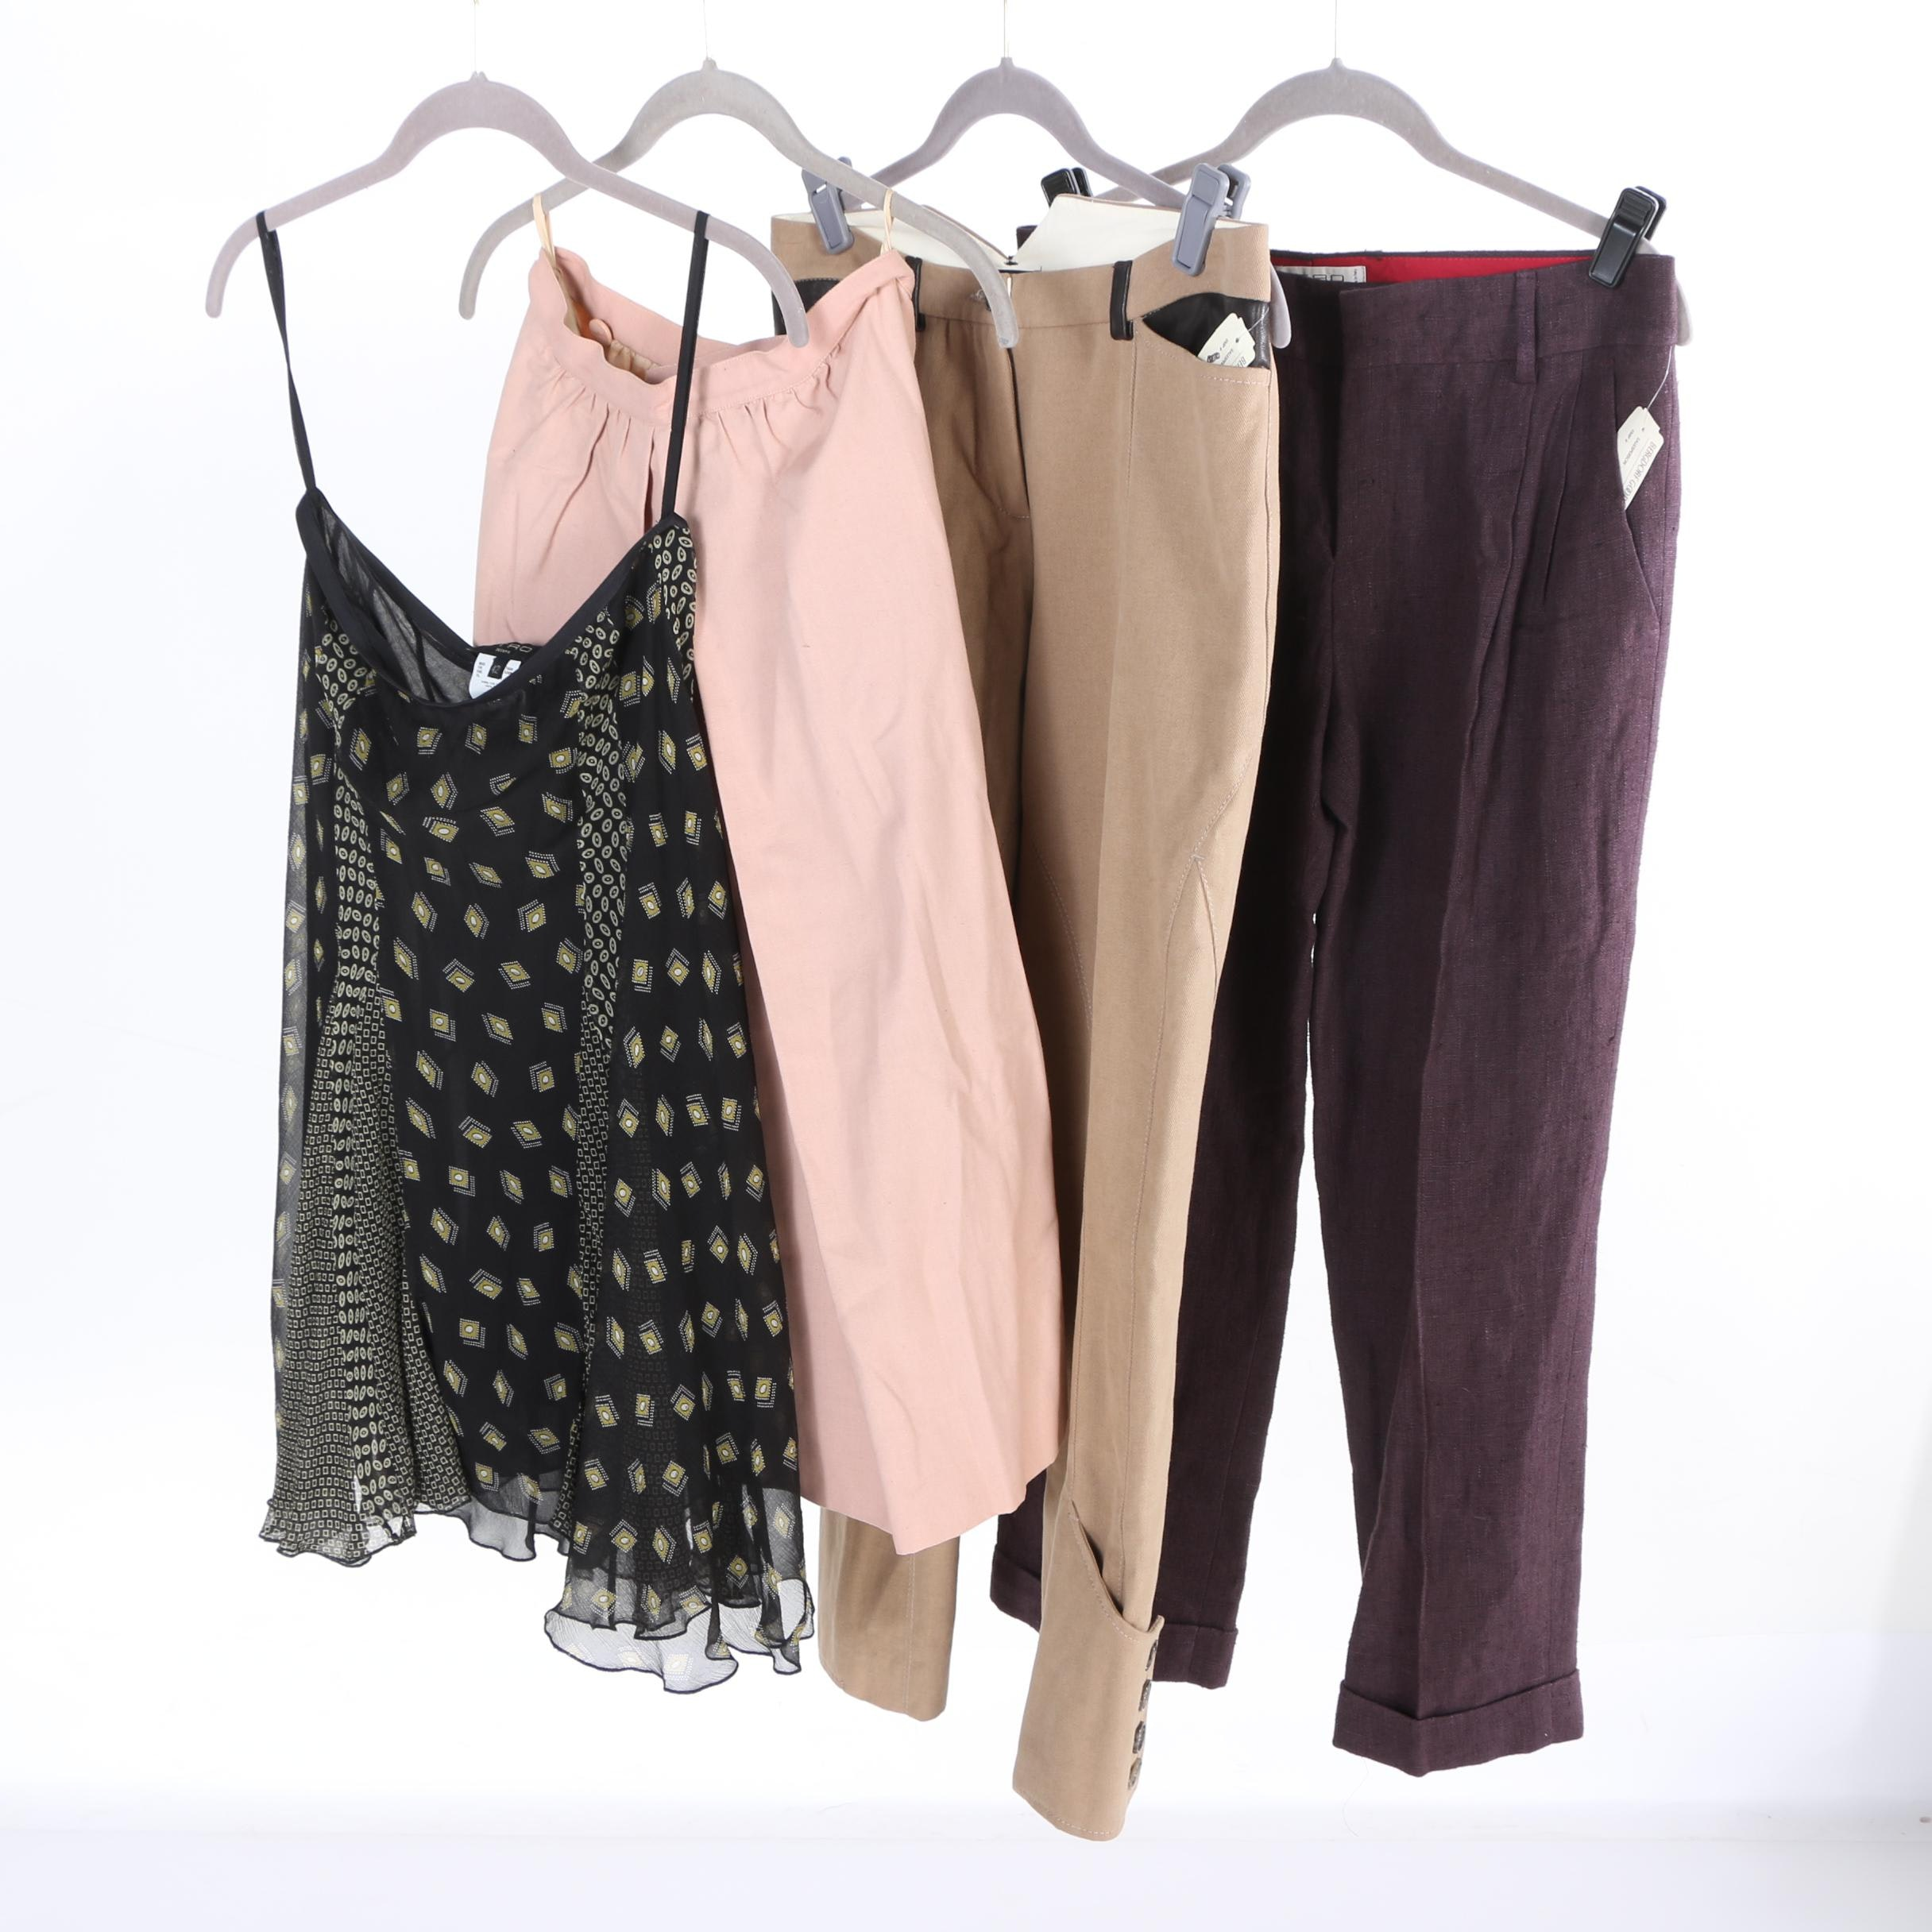 Women's Pants and Skirts Including Etro and Salvatore Ferragamo